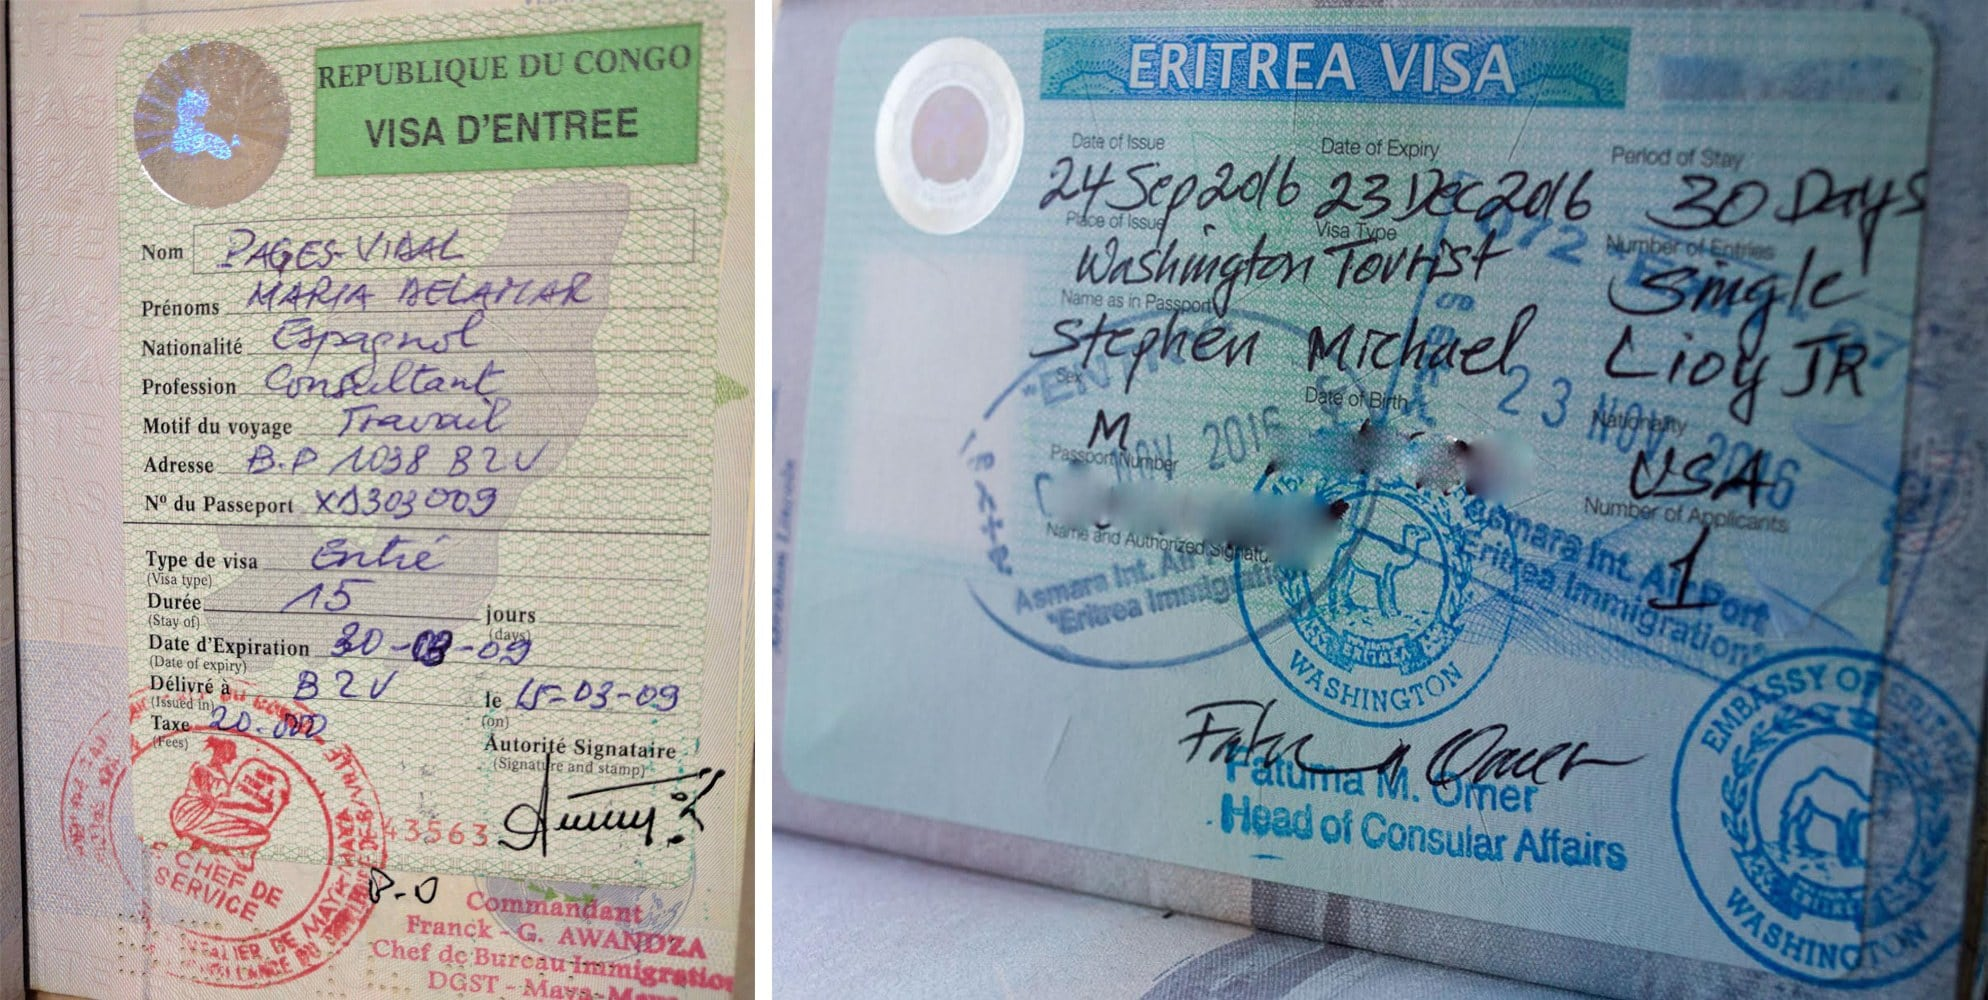 Passport stamp for Congo and Eritrea